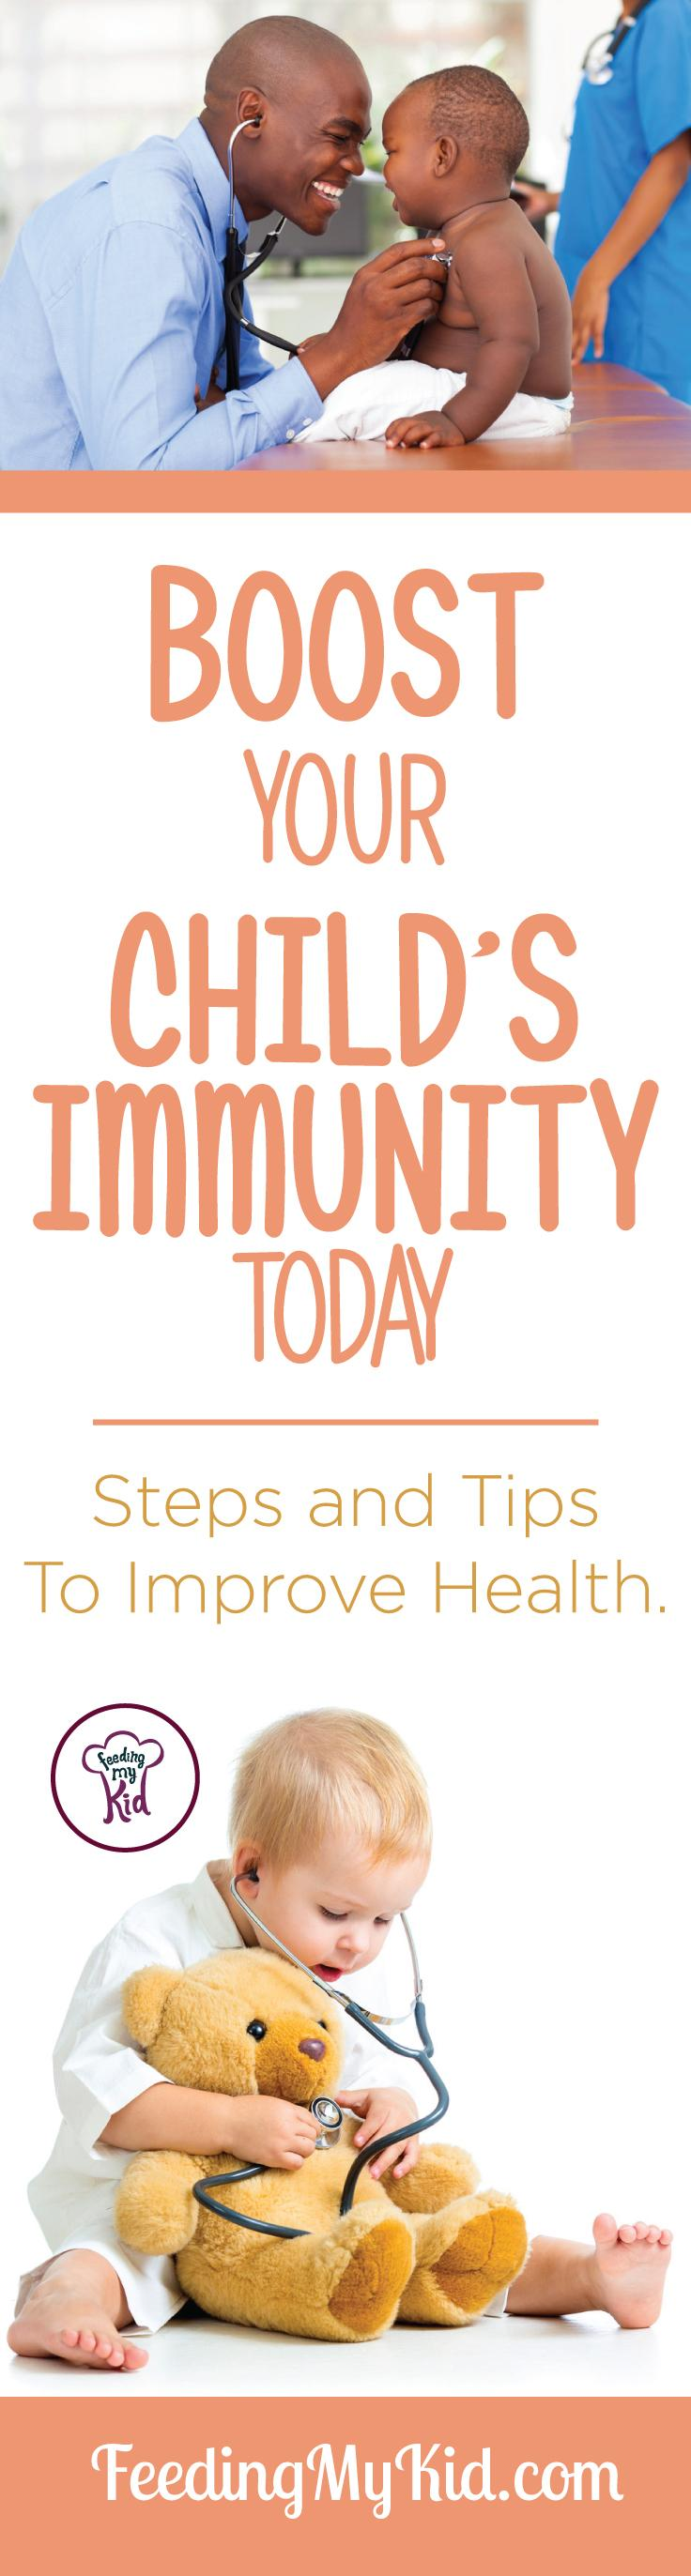 This is a must pin! Learn everything you need to know to improve your child's immune system today! Feeding My Kid is a filled with all the information you need about how to raise your kids, from healthy tips to nutritious recipes. #FeedingMyKid #kidshealth #howtoincreaseimmunity #tips